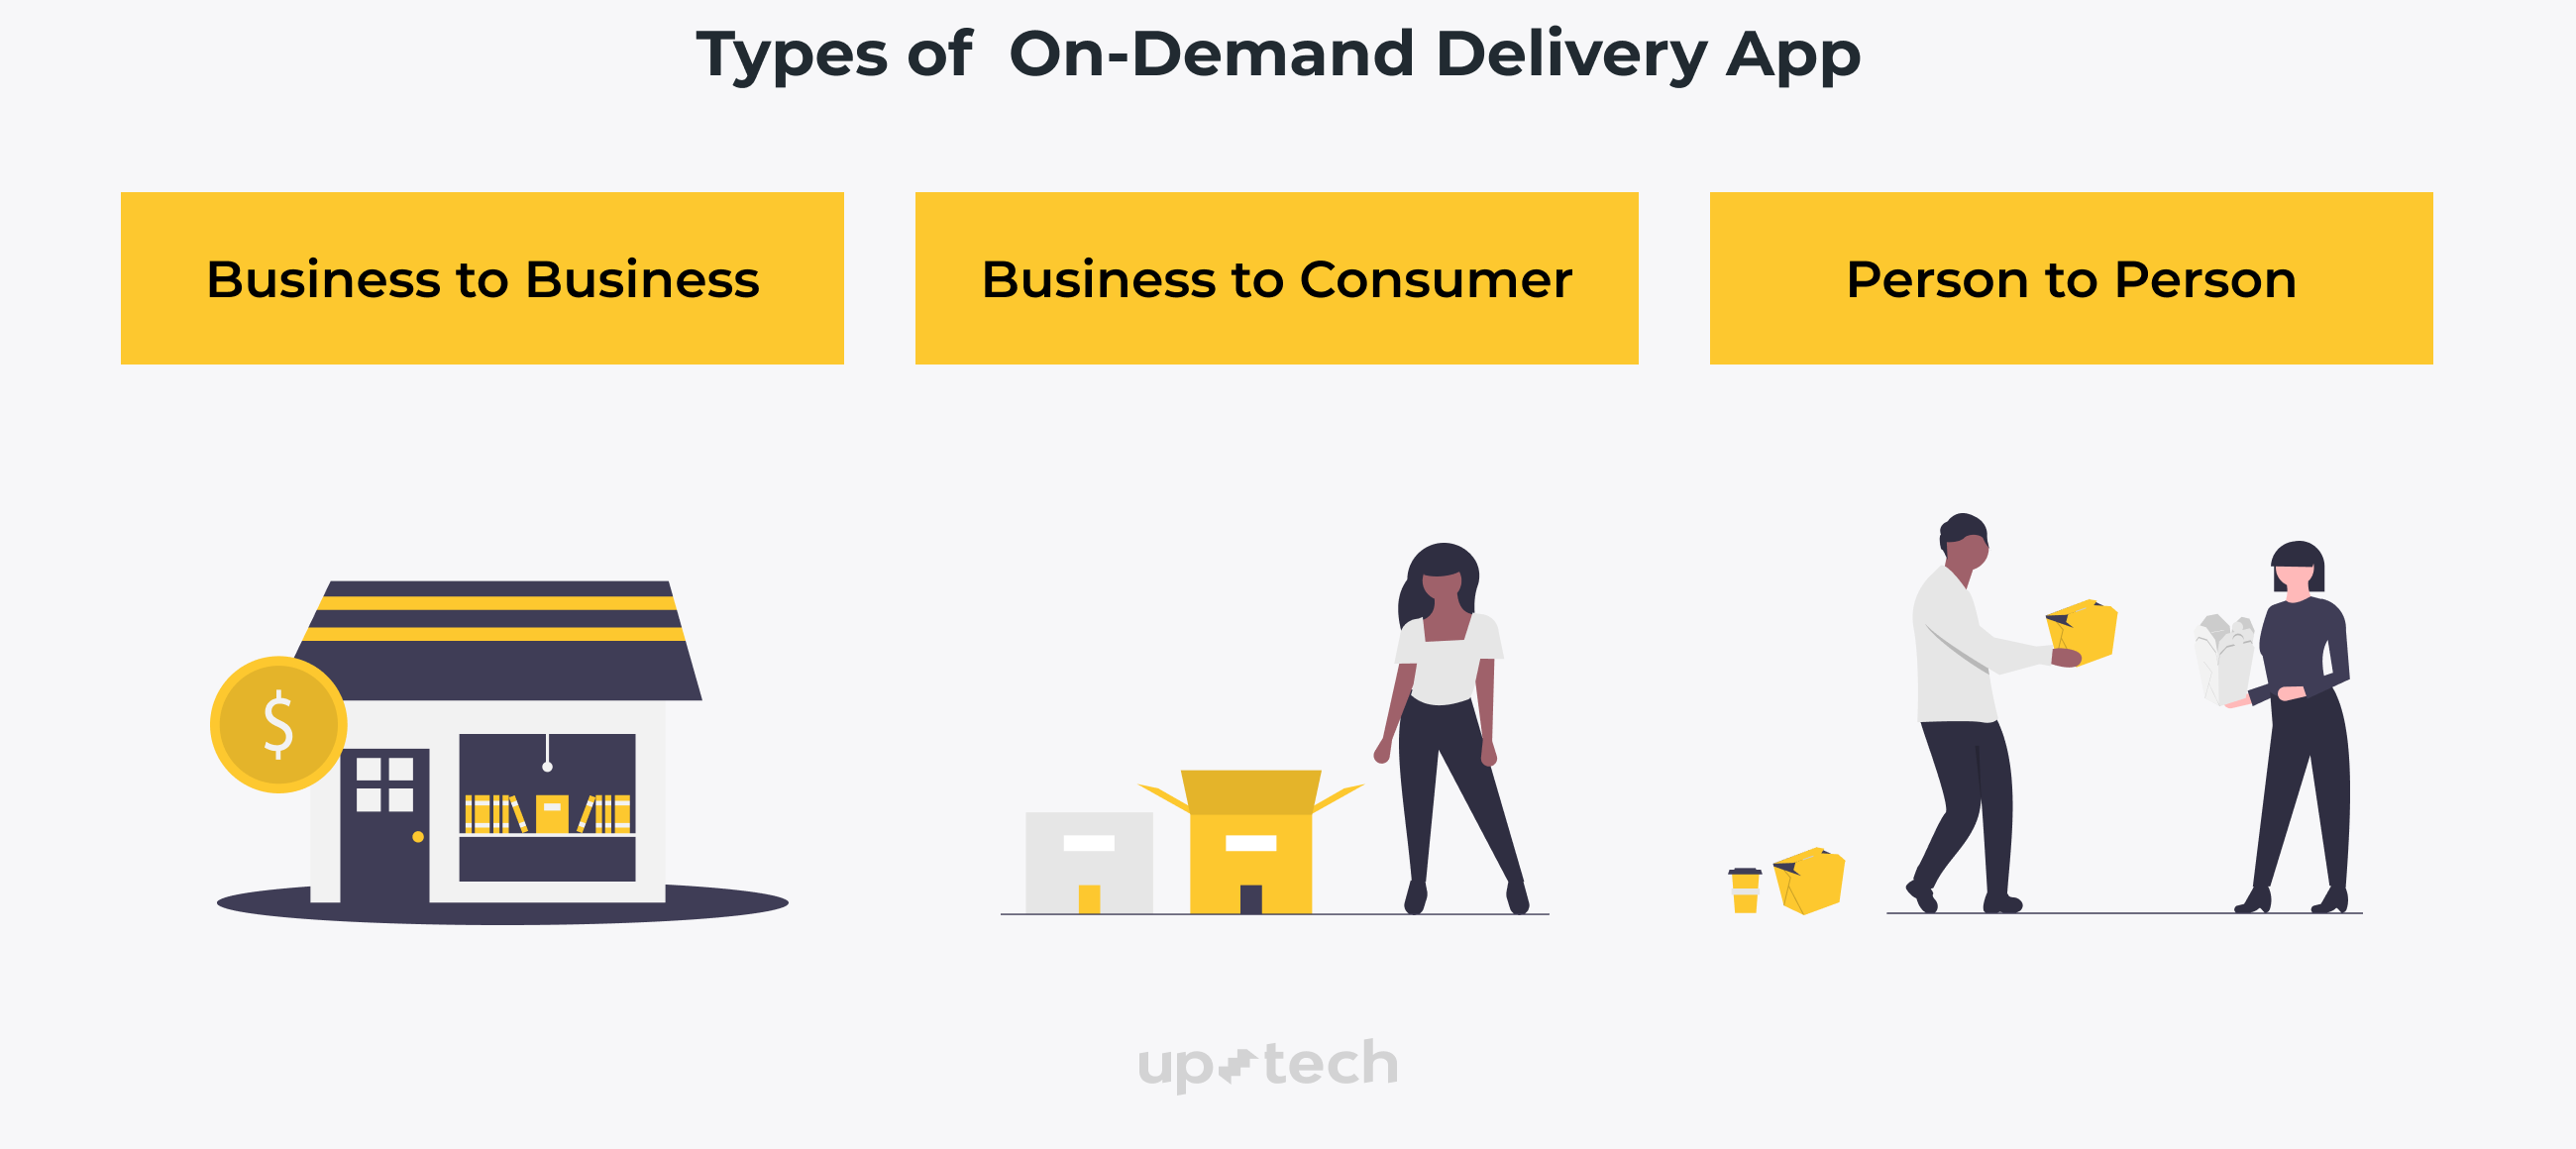 Types of ondemand delivery app